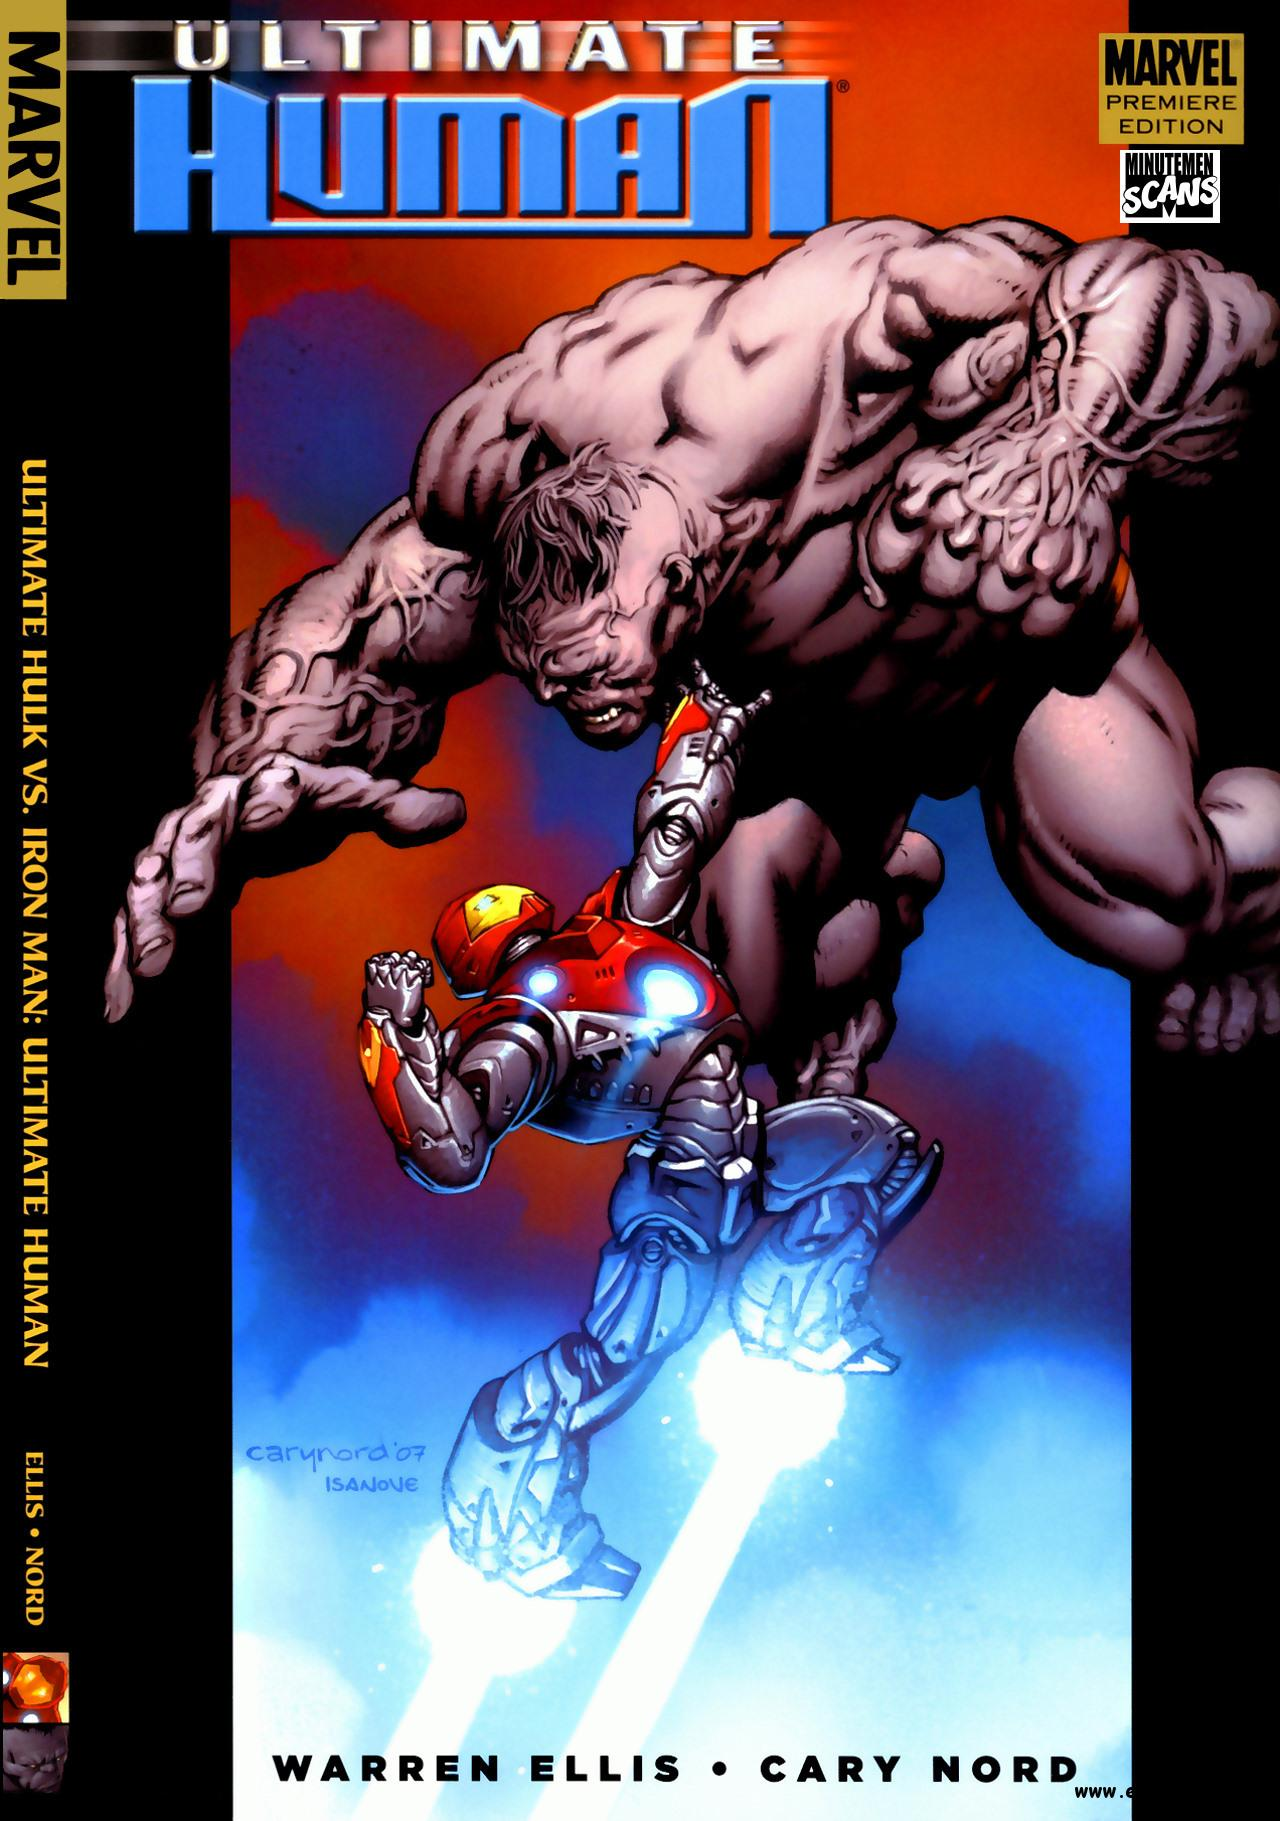 Ultimate Hulk vs Iron Man - Ultimate Human [HC] (2008) free download